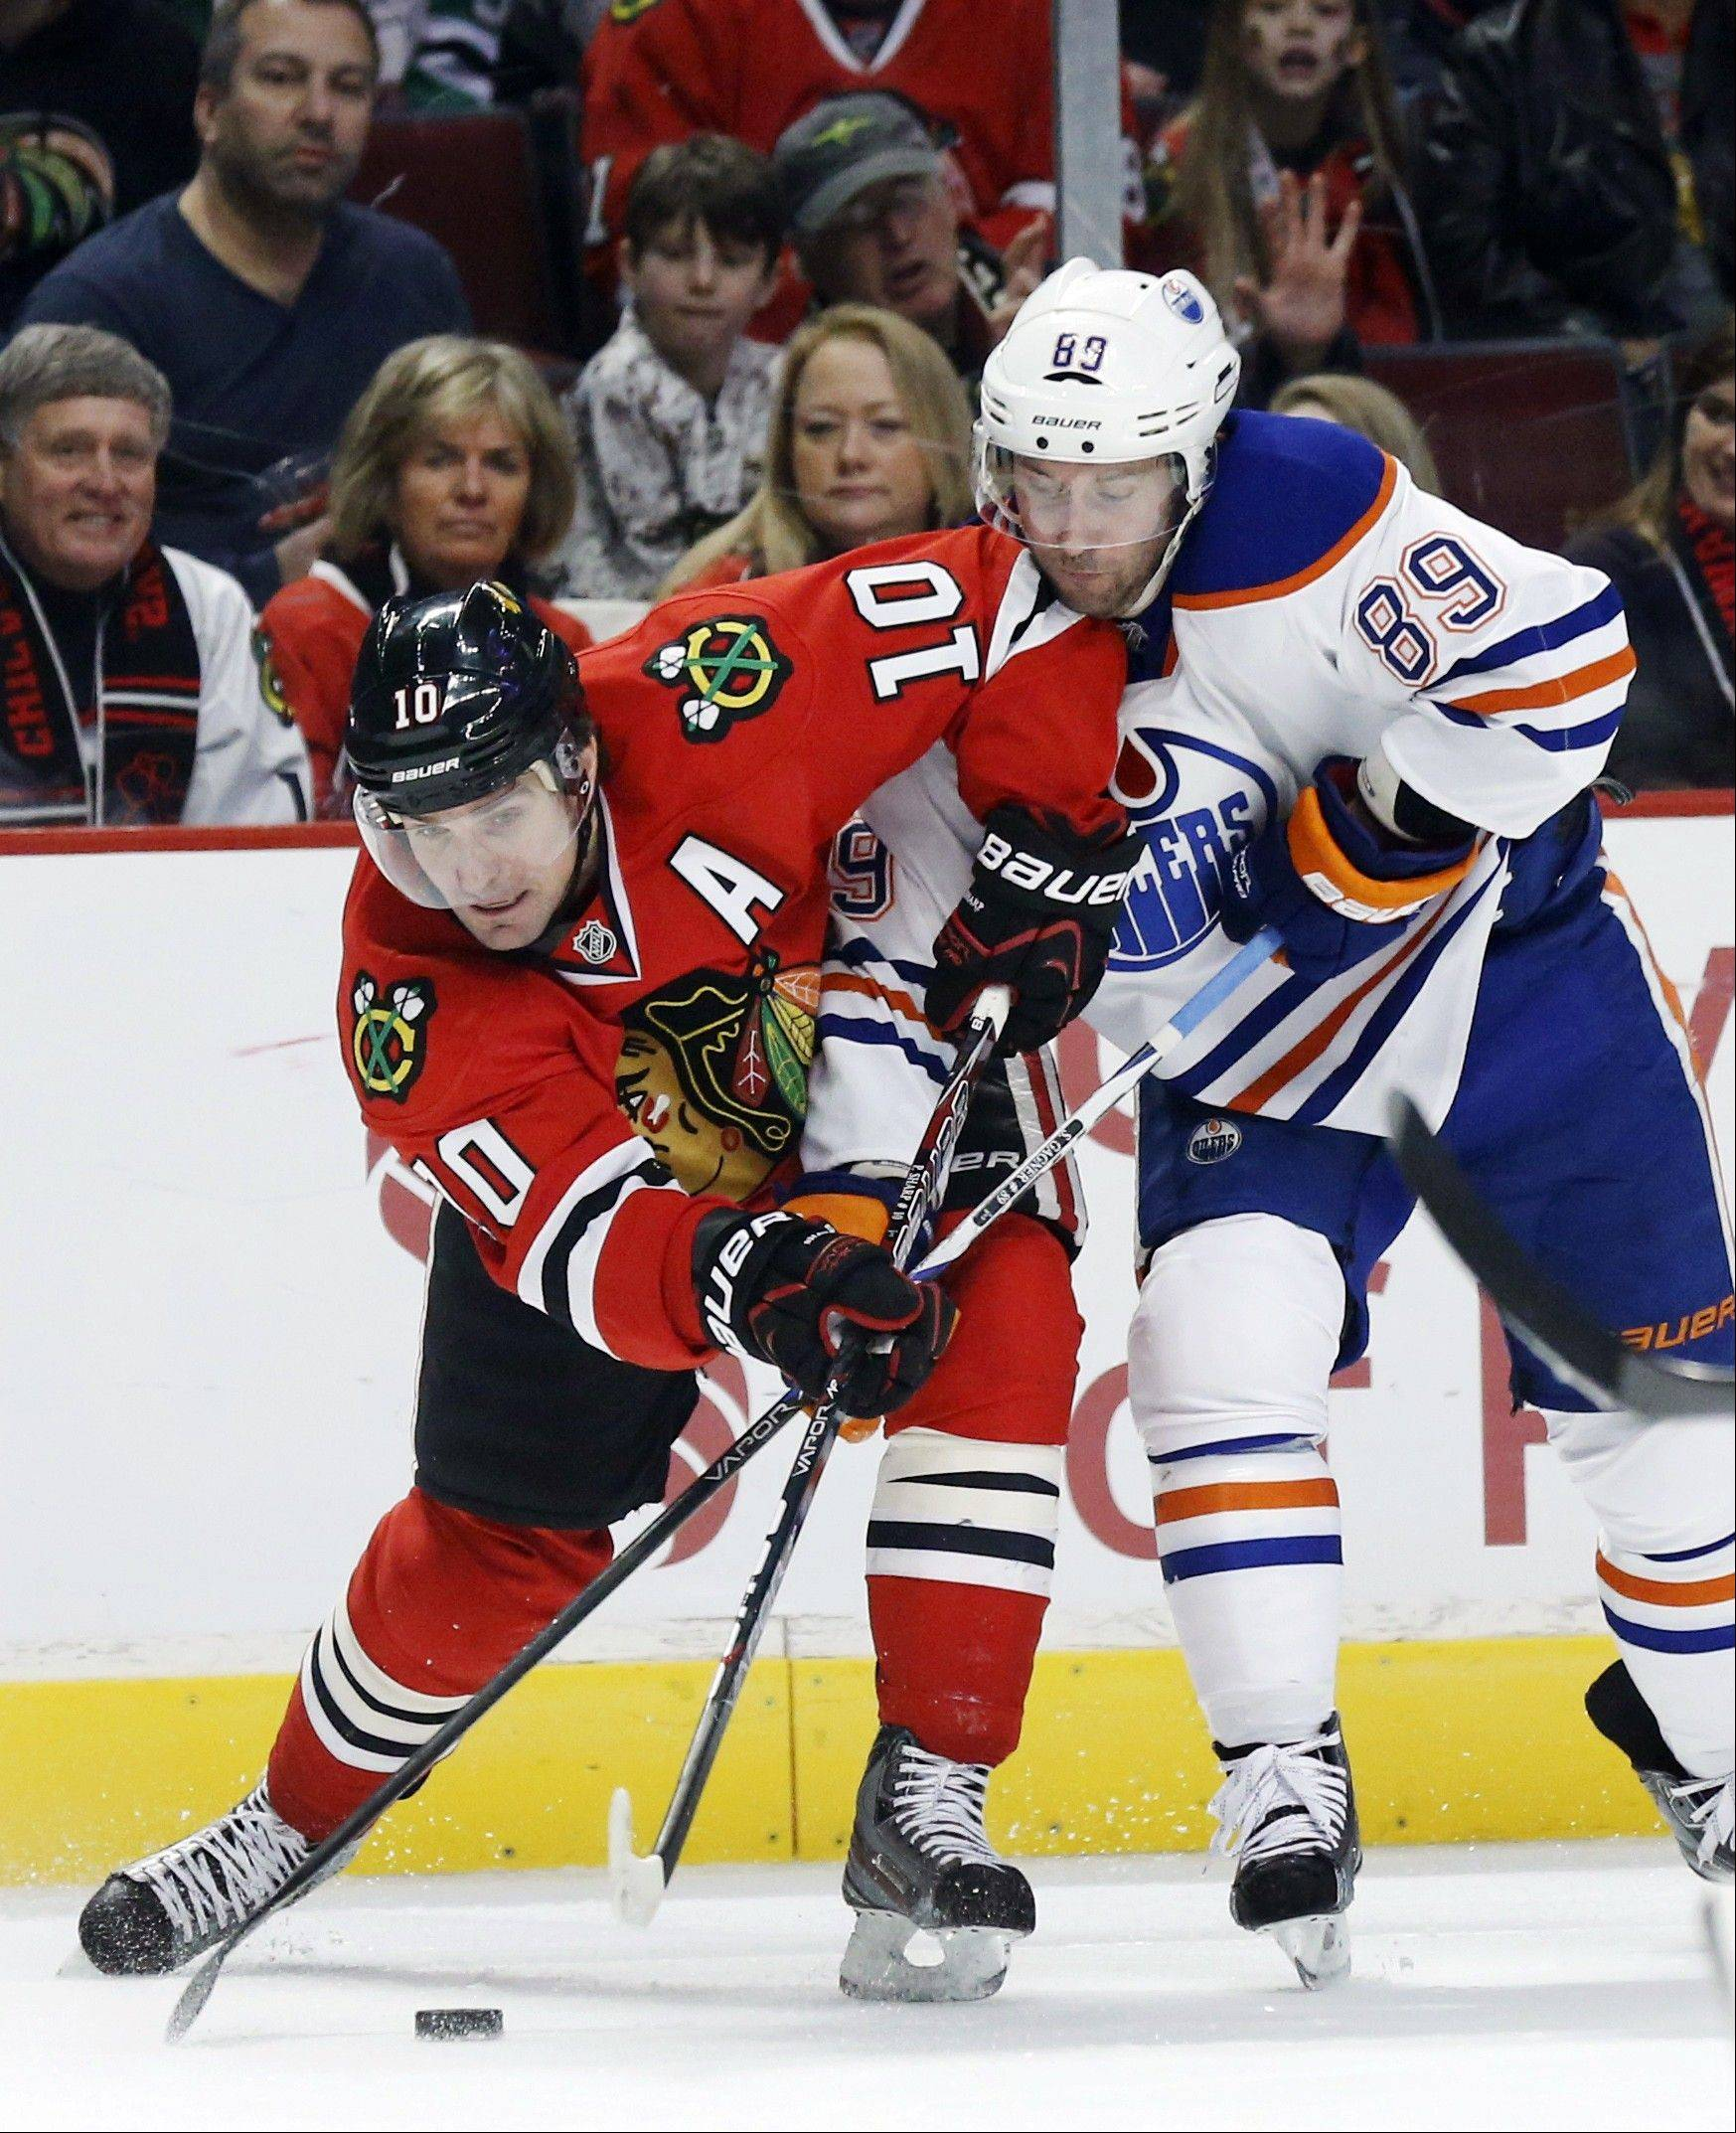 Blackhawks sniper Patrick Sharp battles Edmonton Oilers center Sam Gagner for a loose puck during Monday's first period at United Center.